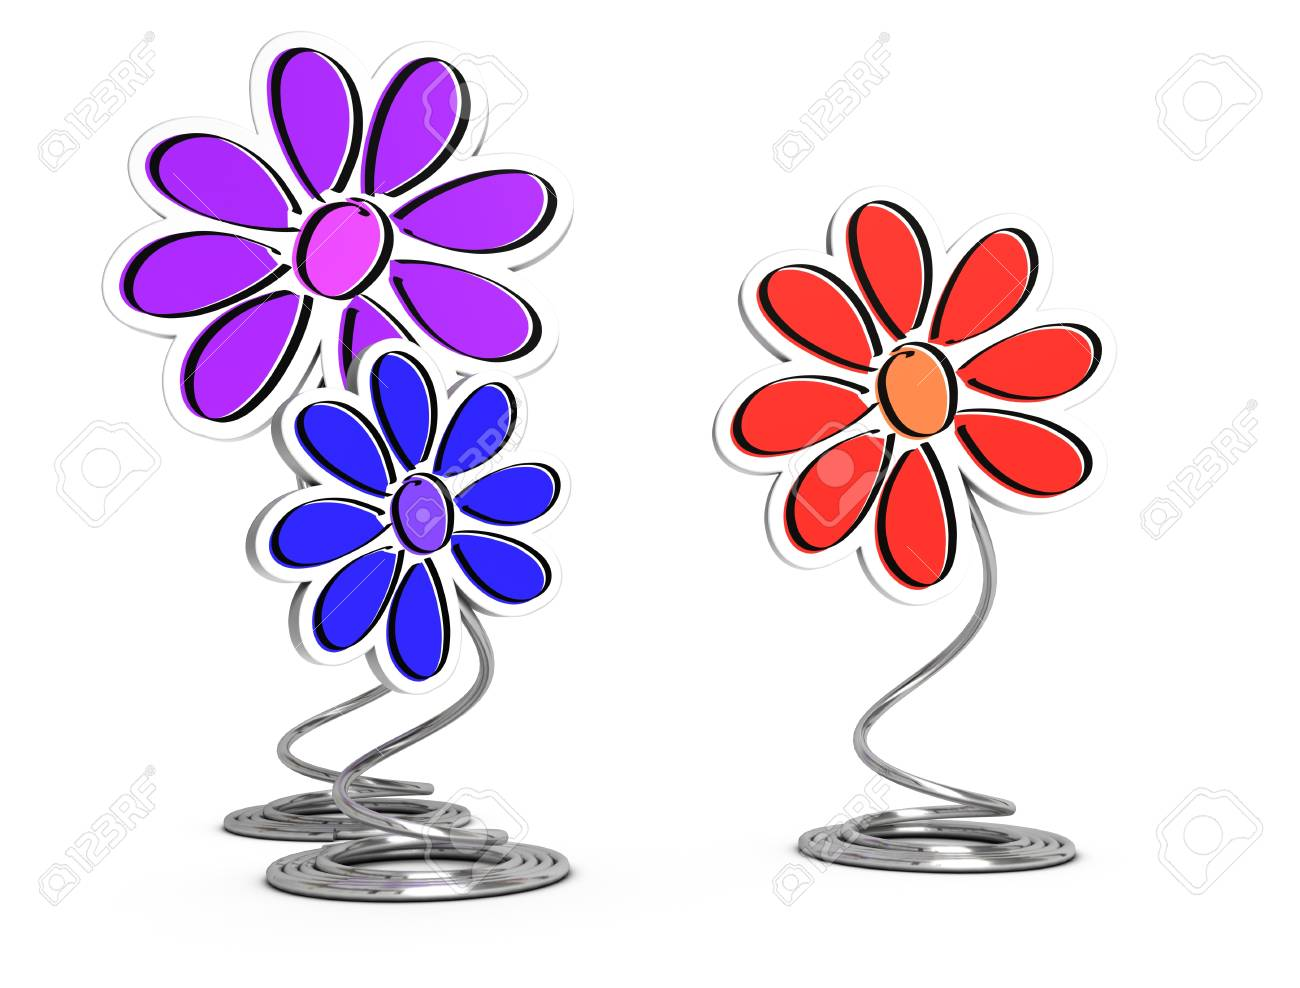 3d render of decorative flowers and wire pedestal over white background, decorative elements Stock Photo - 13530690